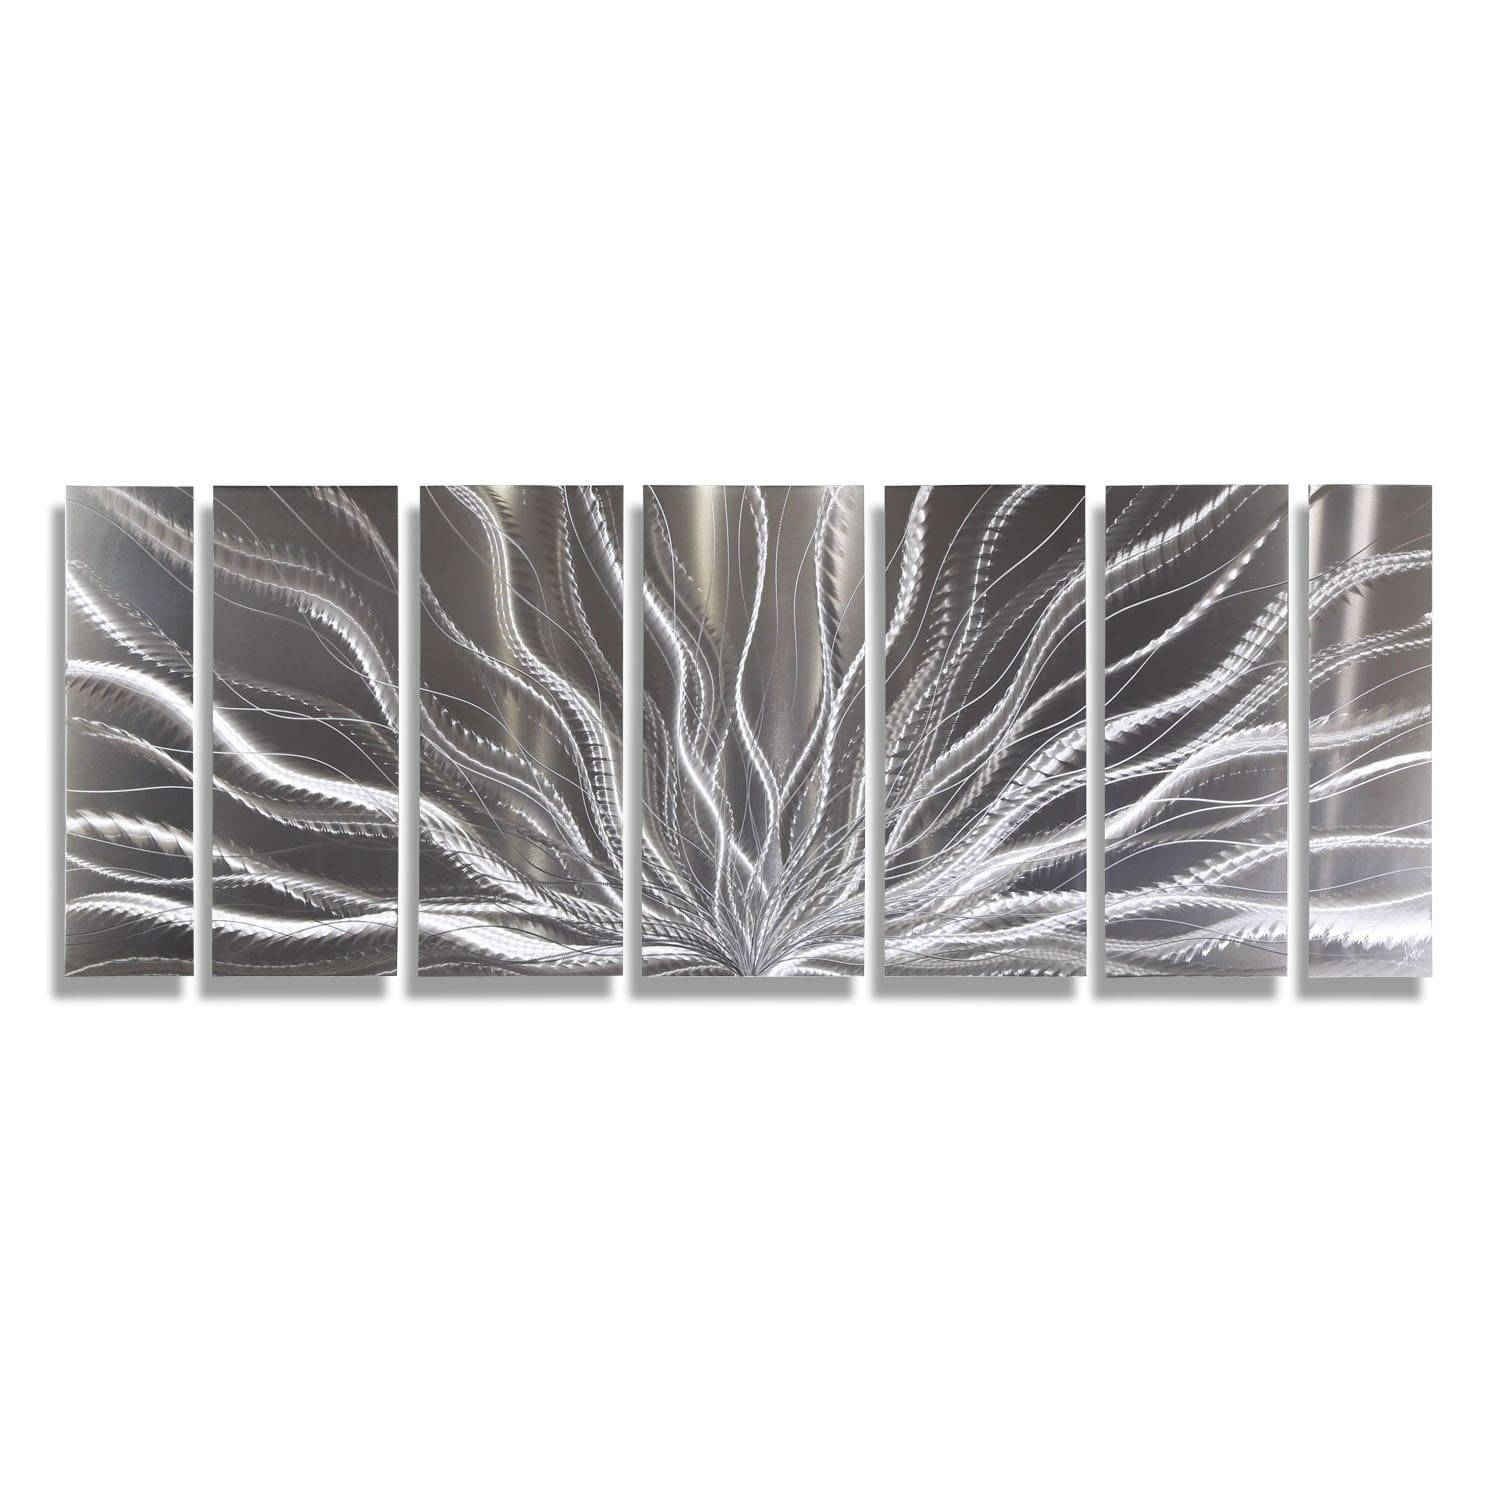 Statements2000 Silver Abstract Etched Metal Wall Art Sculpture With Most Popular Etched Metal Wall Art (View 18 of 20)